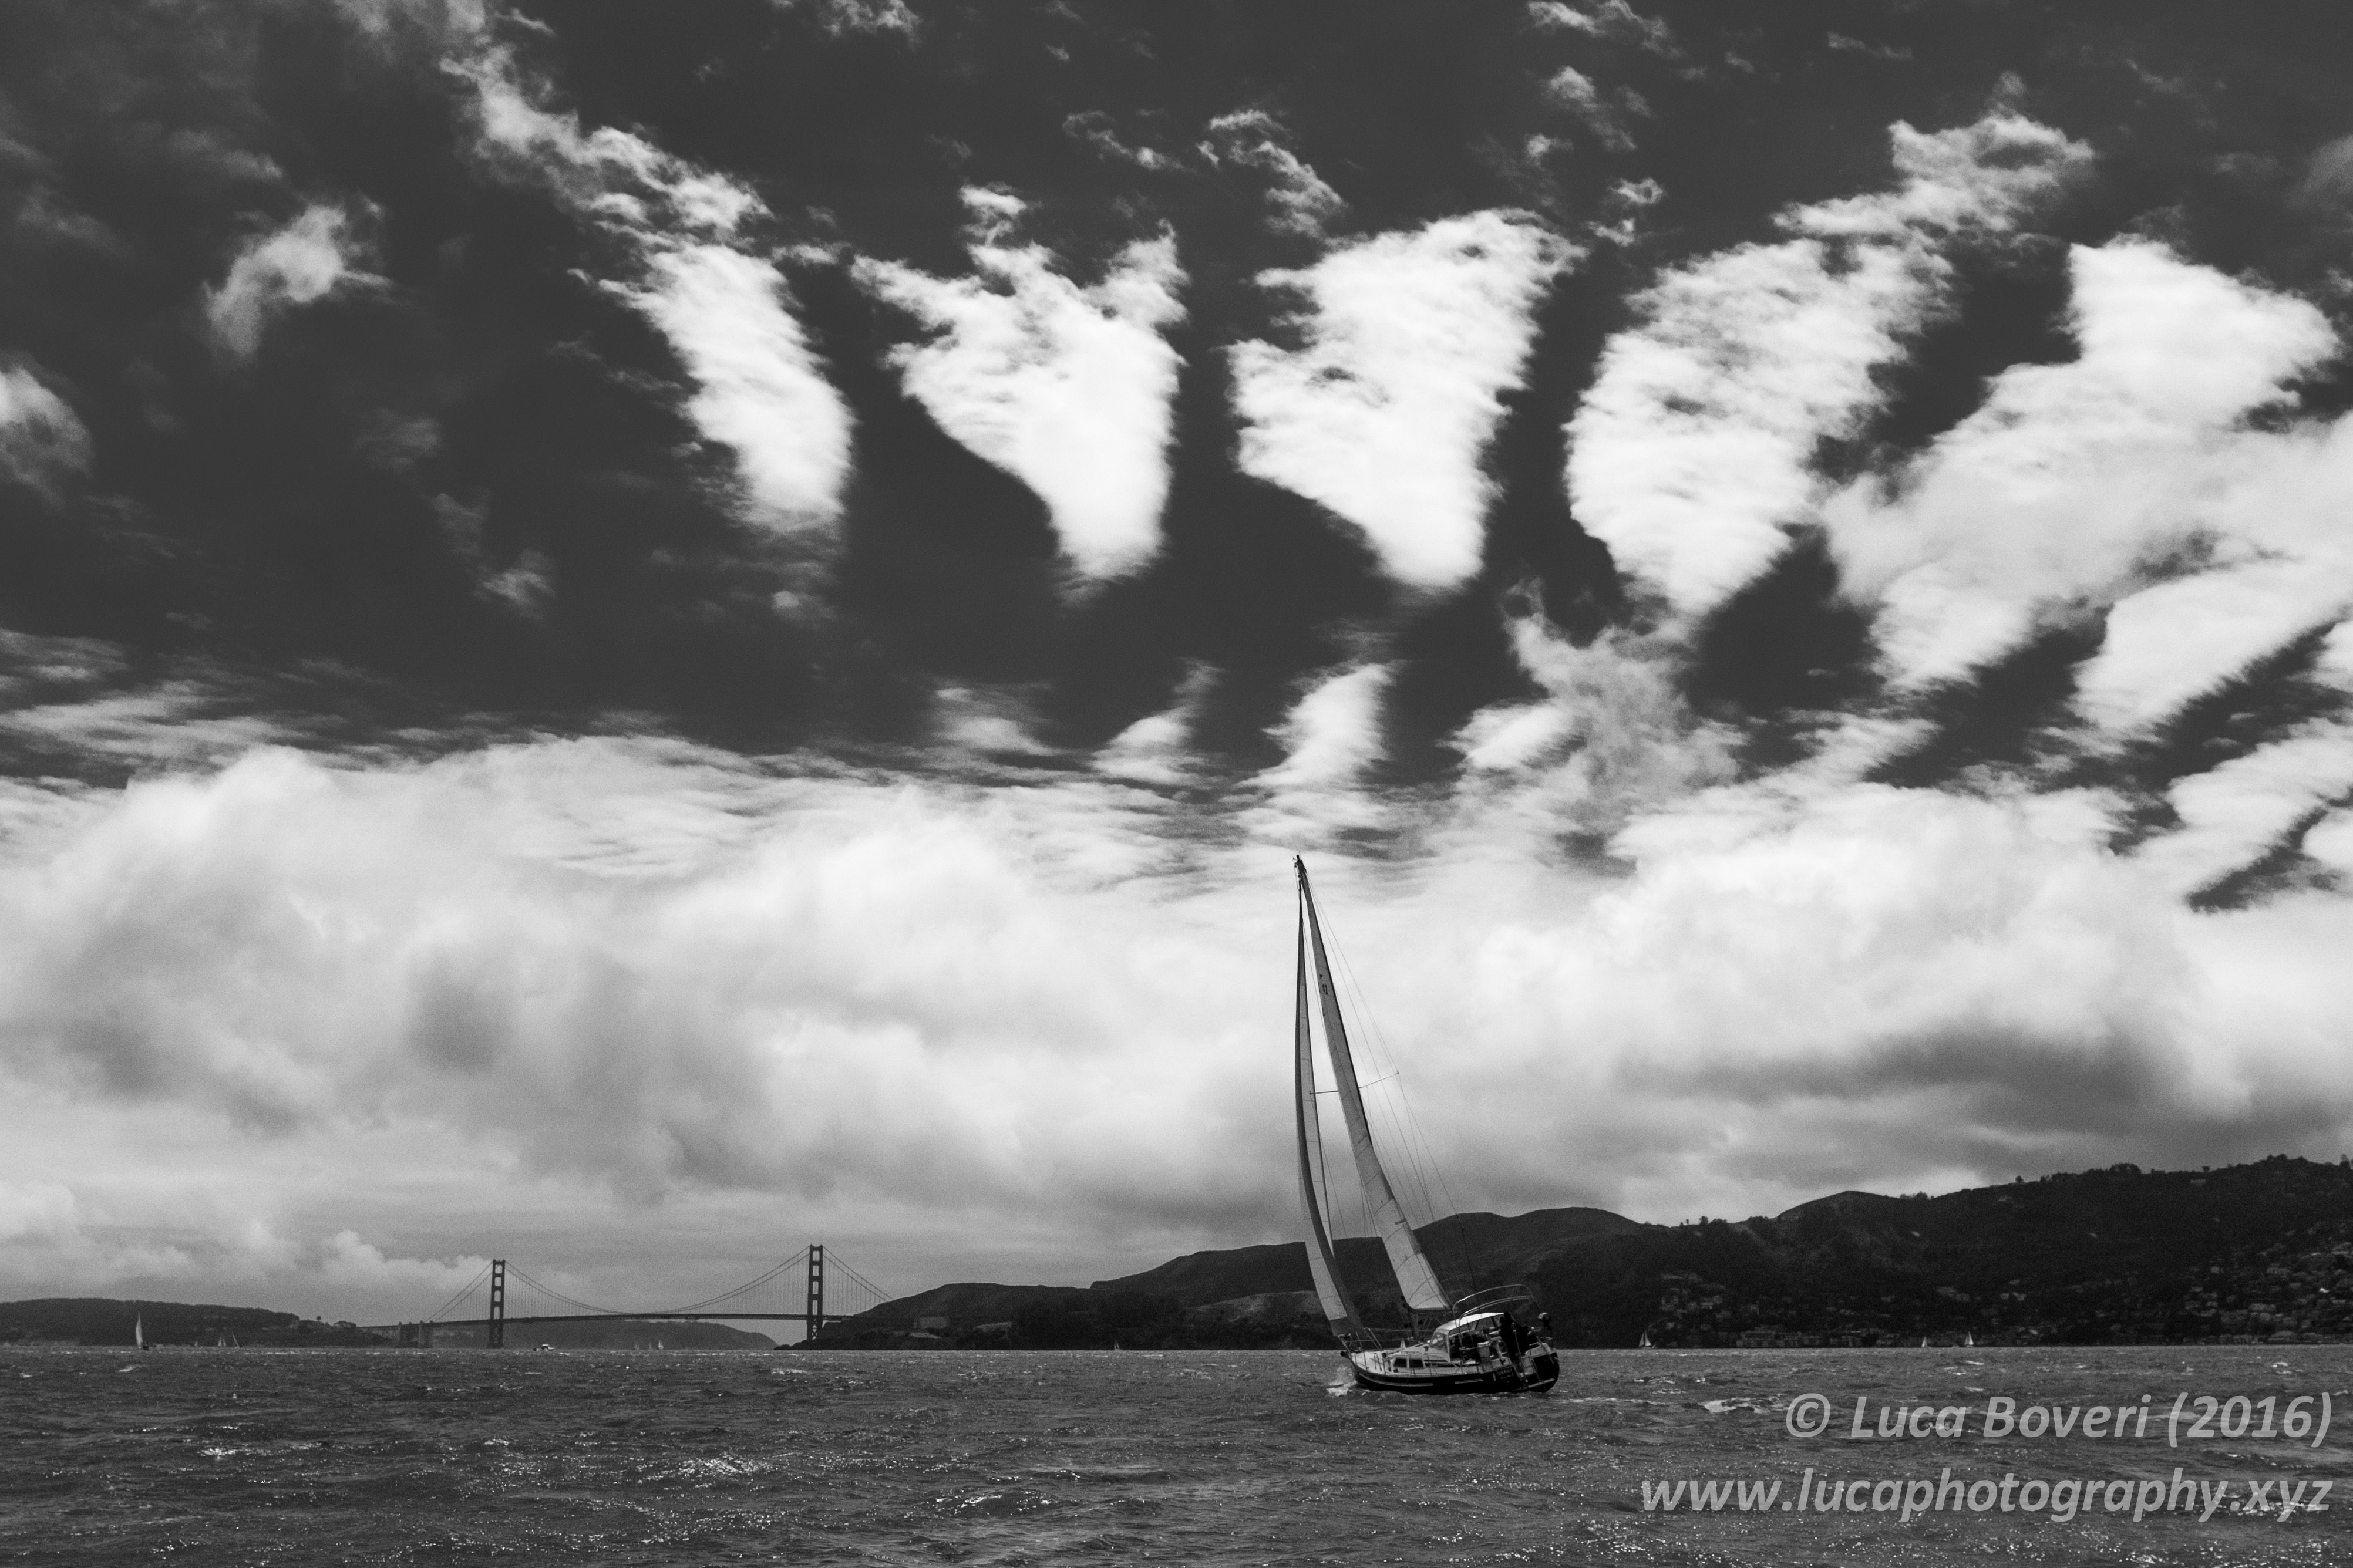 Saling the SF Bay. @lucaboveri